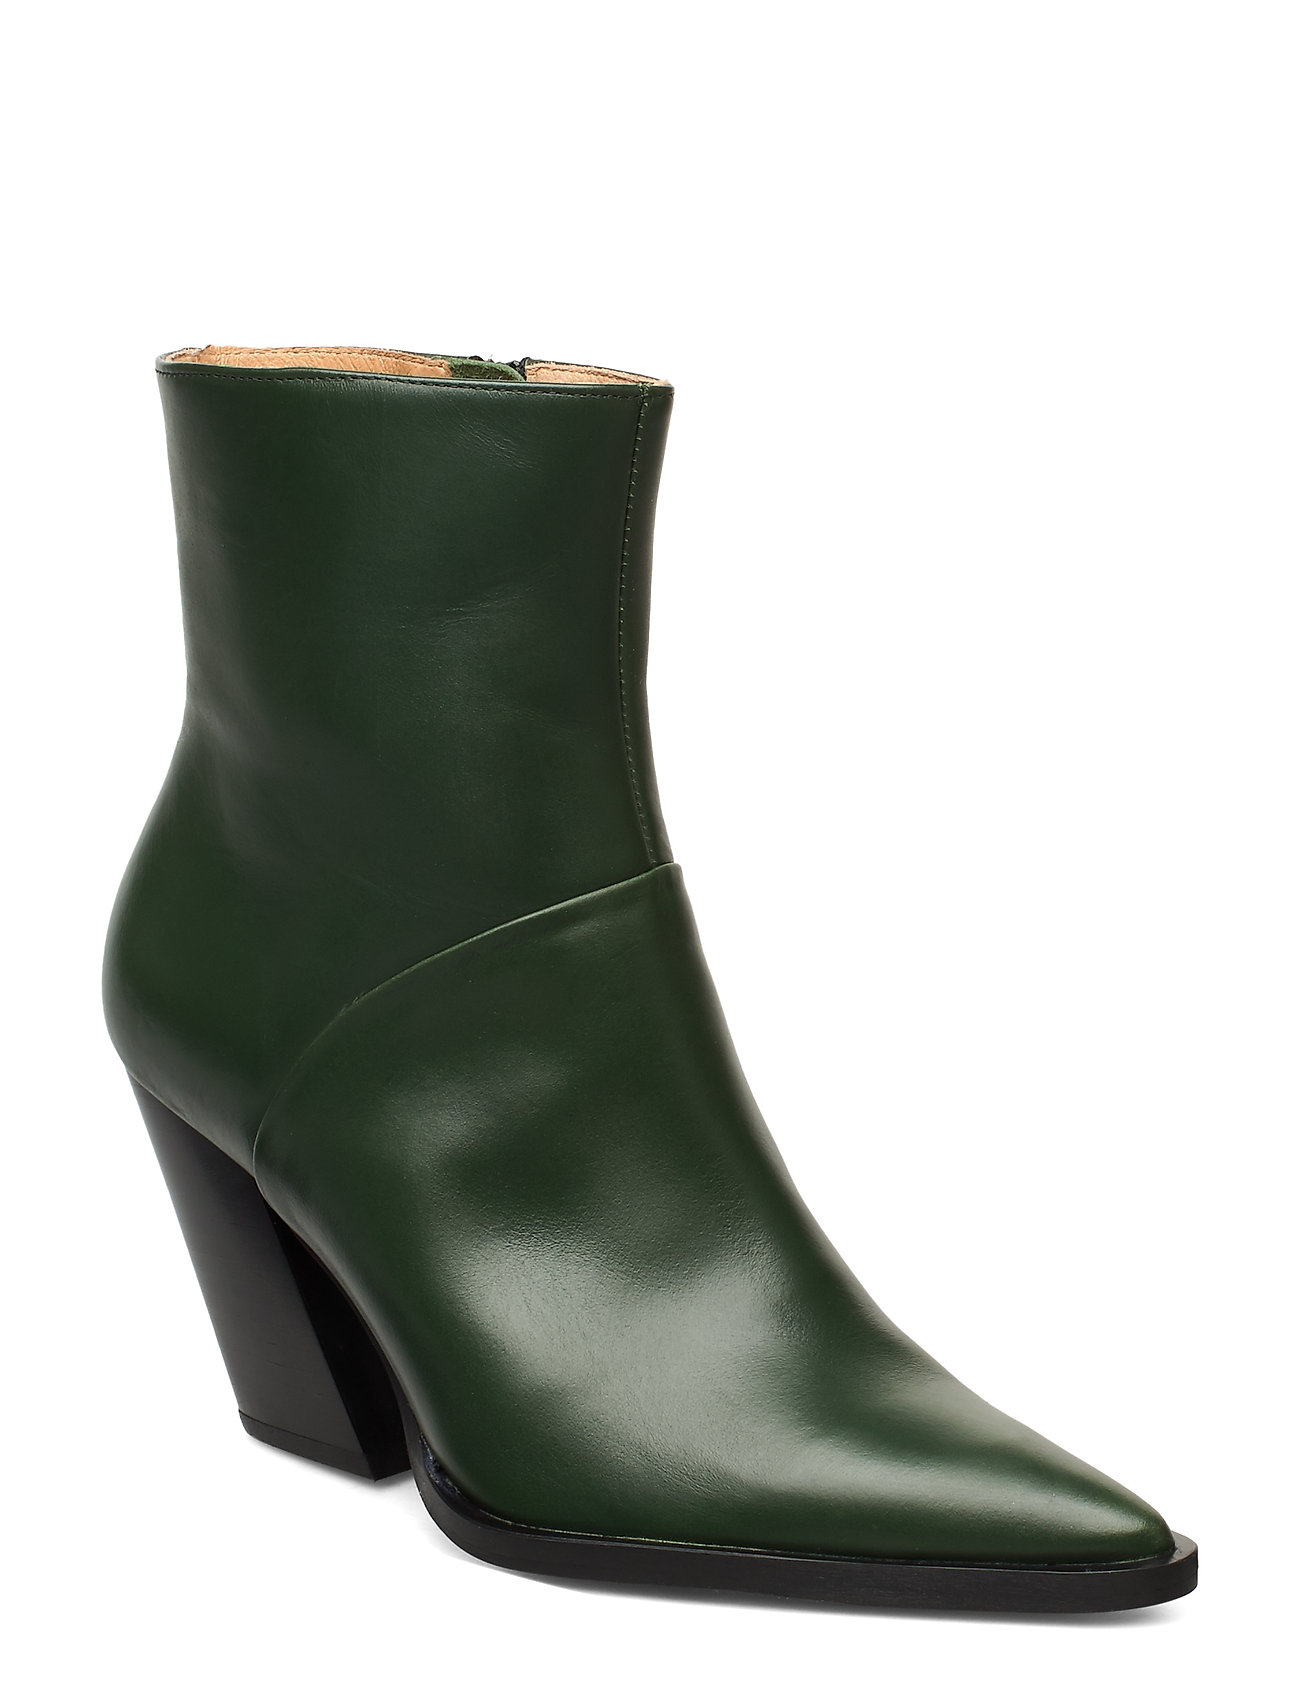 Image of Escape From The West Ankle Boot Shoes Boots Ankle Boots Ankle Boot - Heel Grøn ANNY NORD (3406245505)